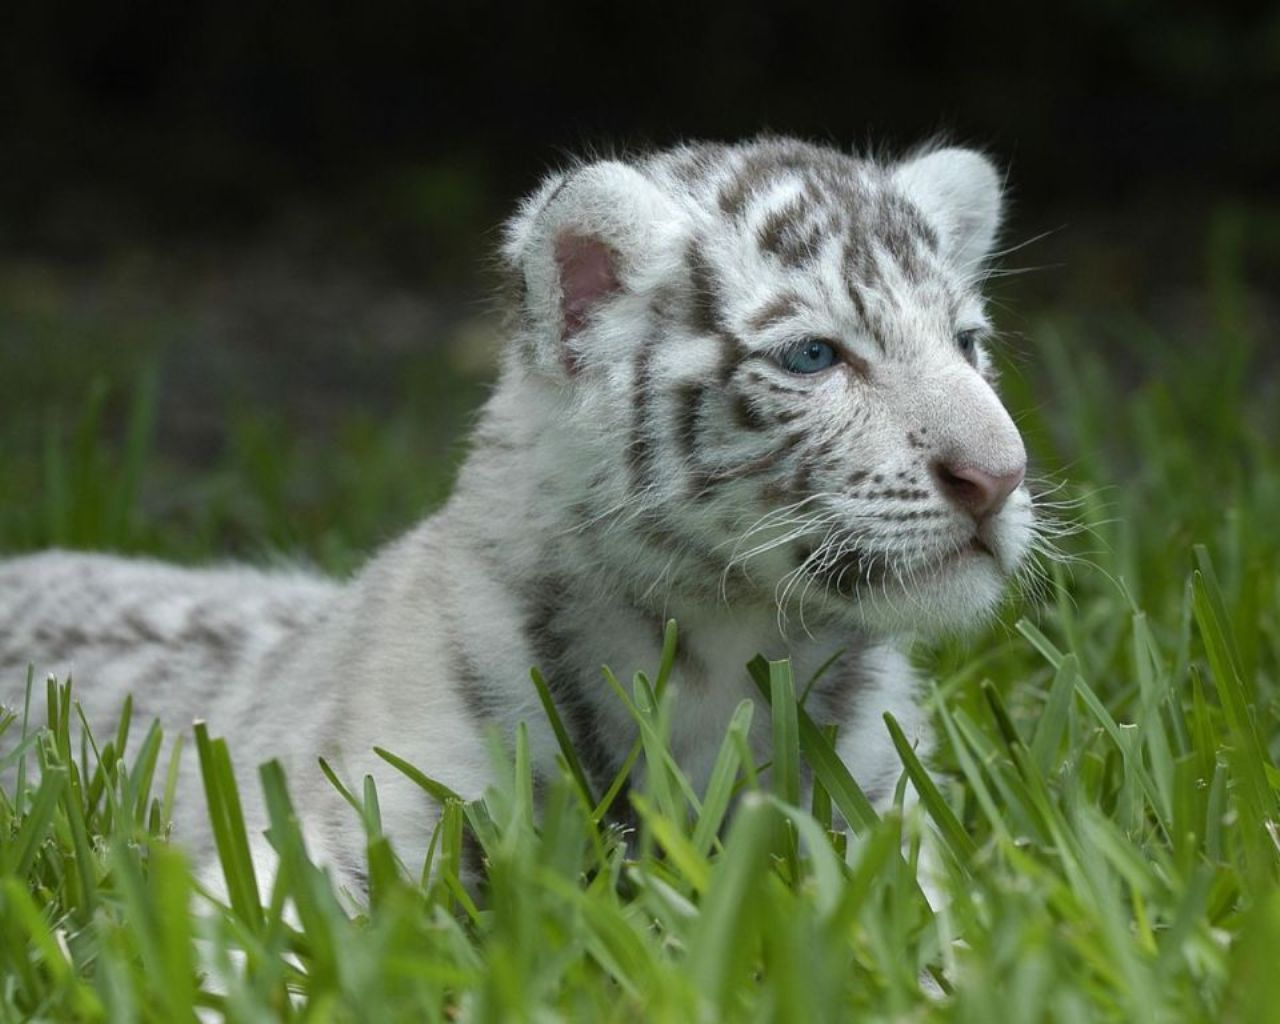 TIGER WALLPAPERS White Tiger Cub Wallpapers 1280x1024